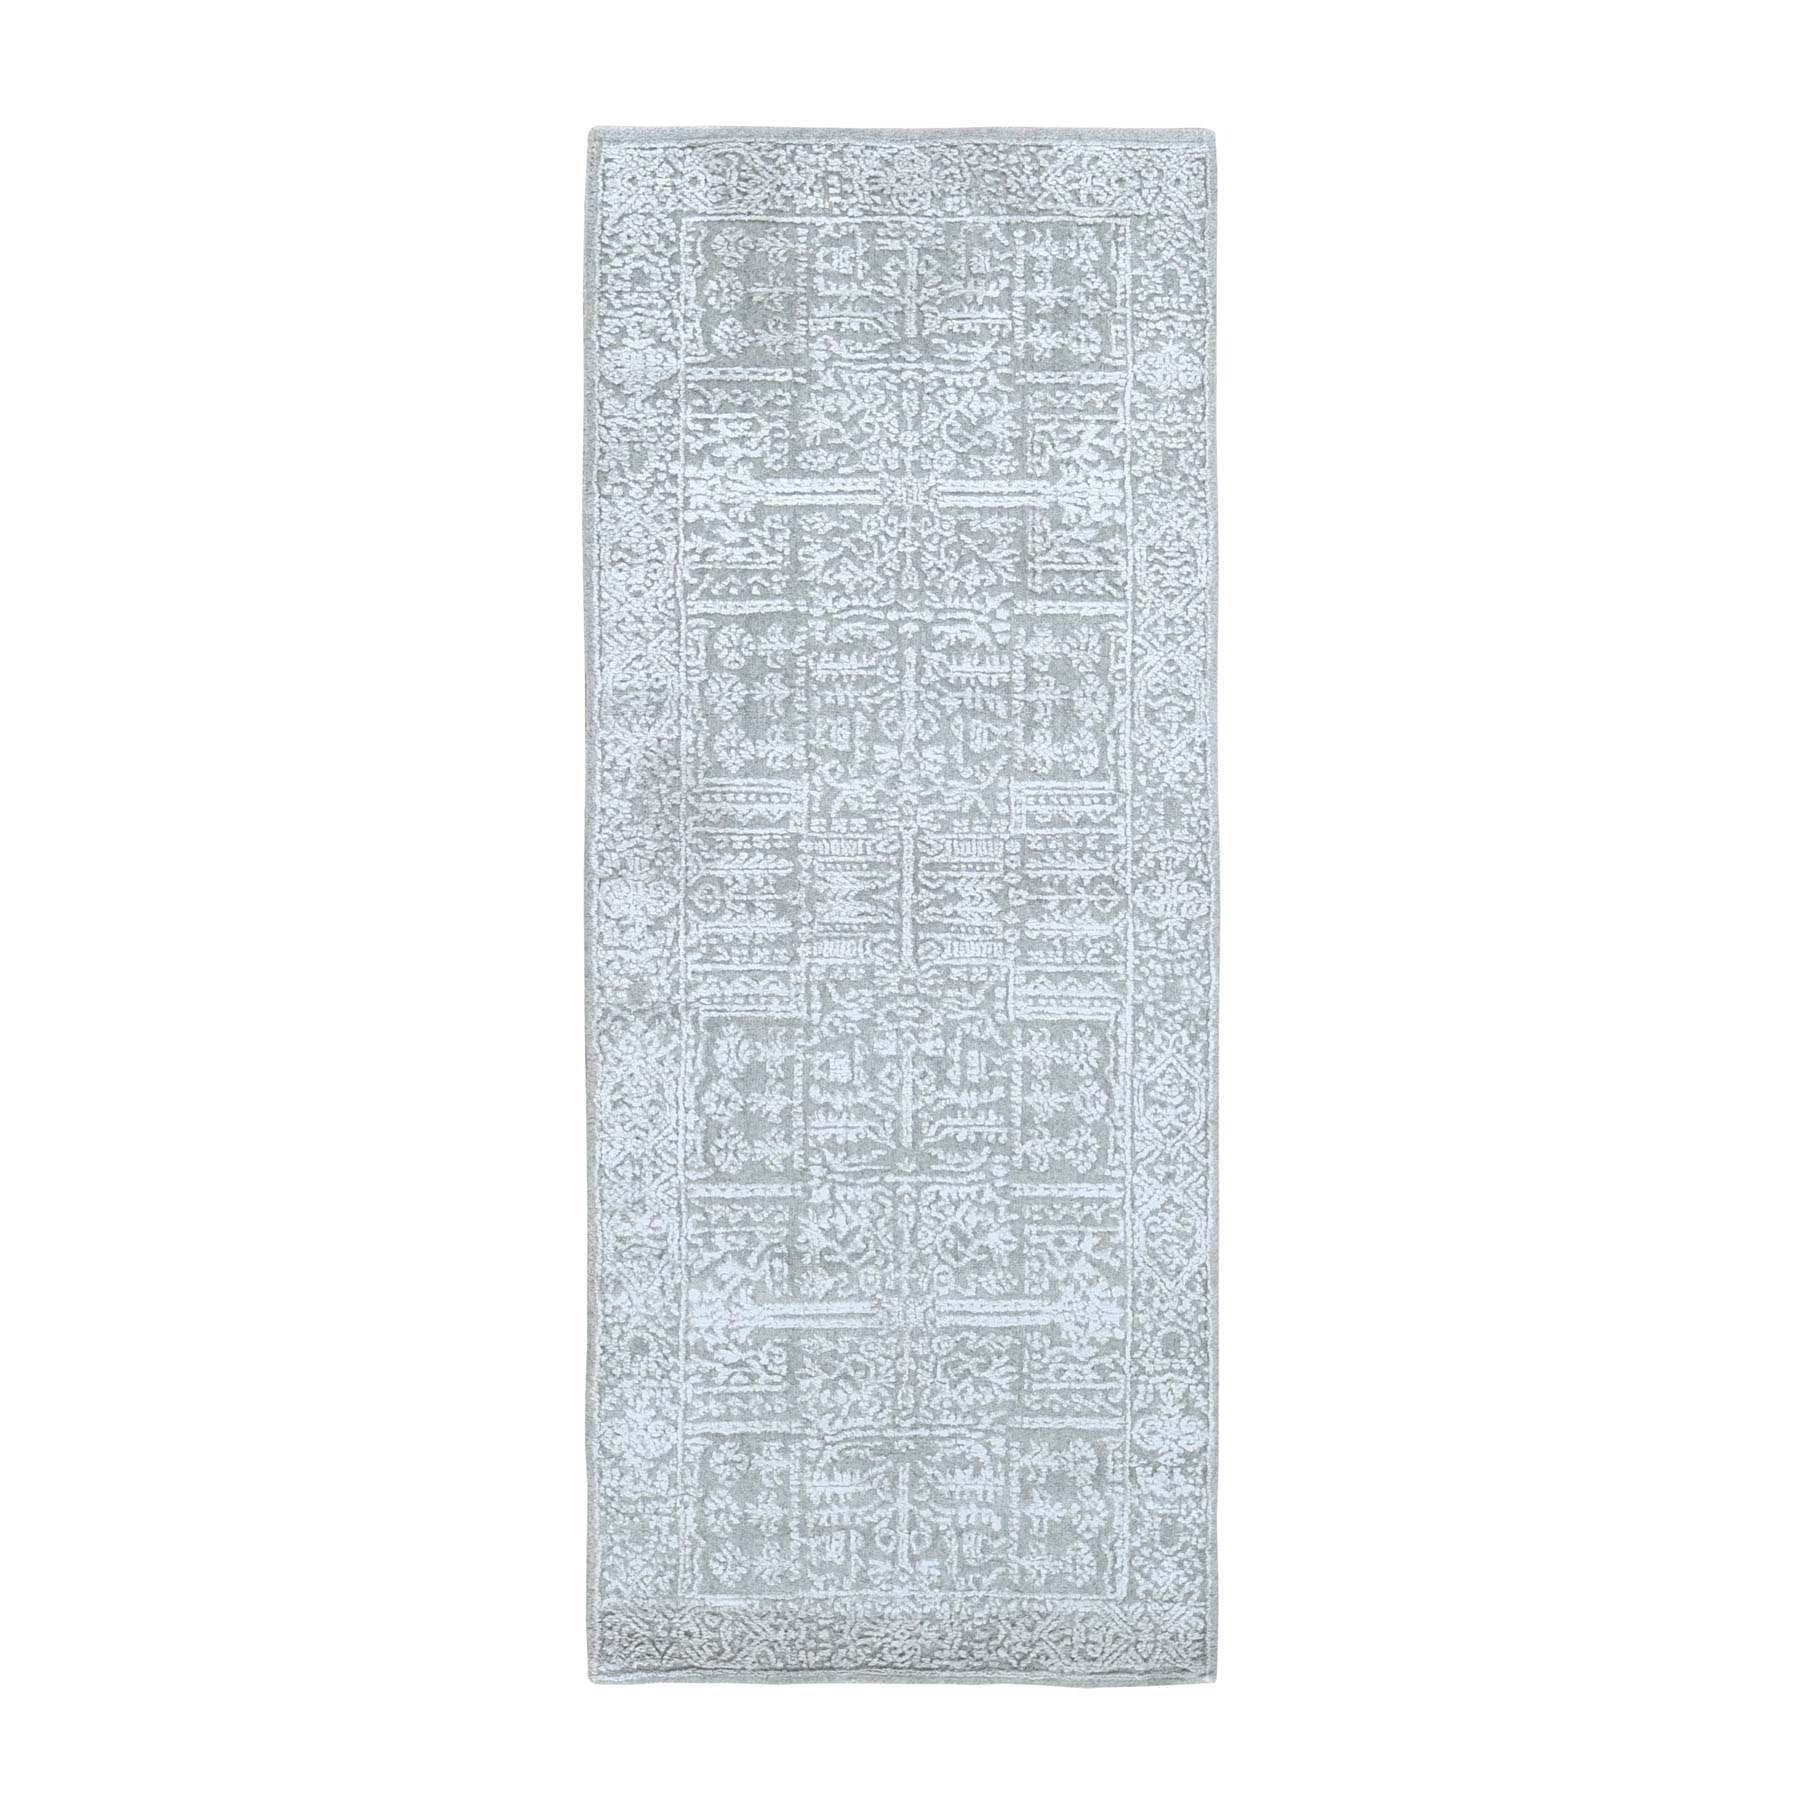 Mid Century Modern Collection Hand Loomed Grey Rug No: 0199154